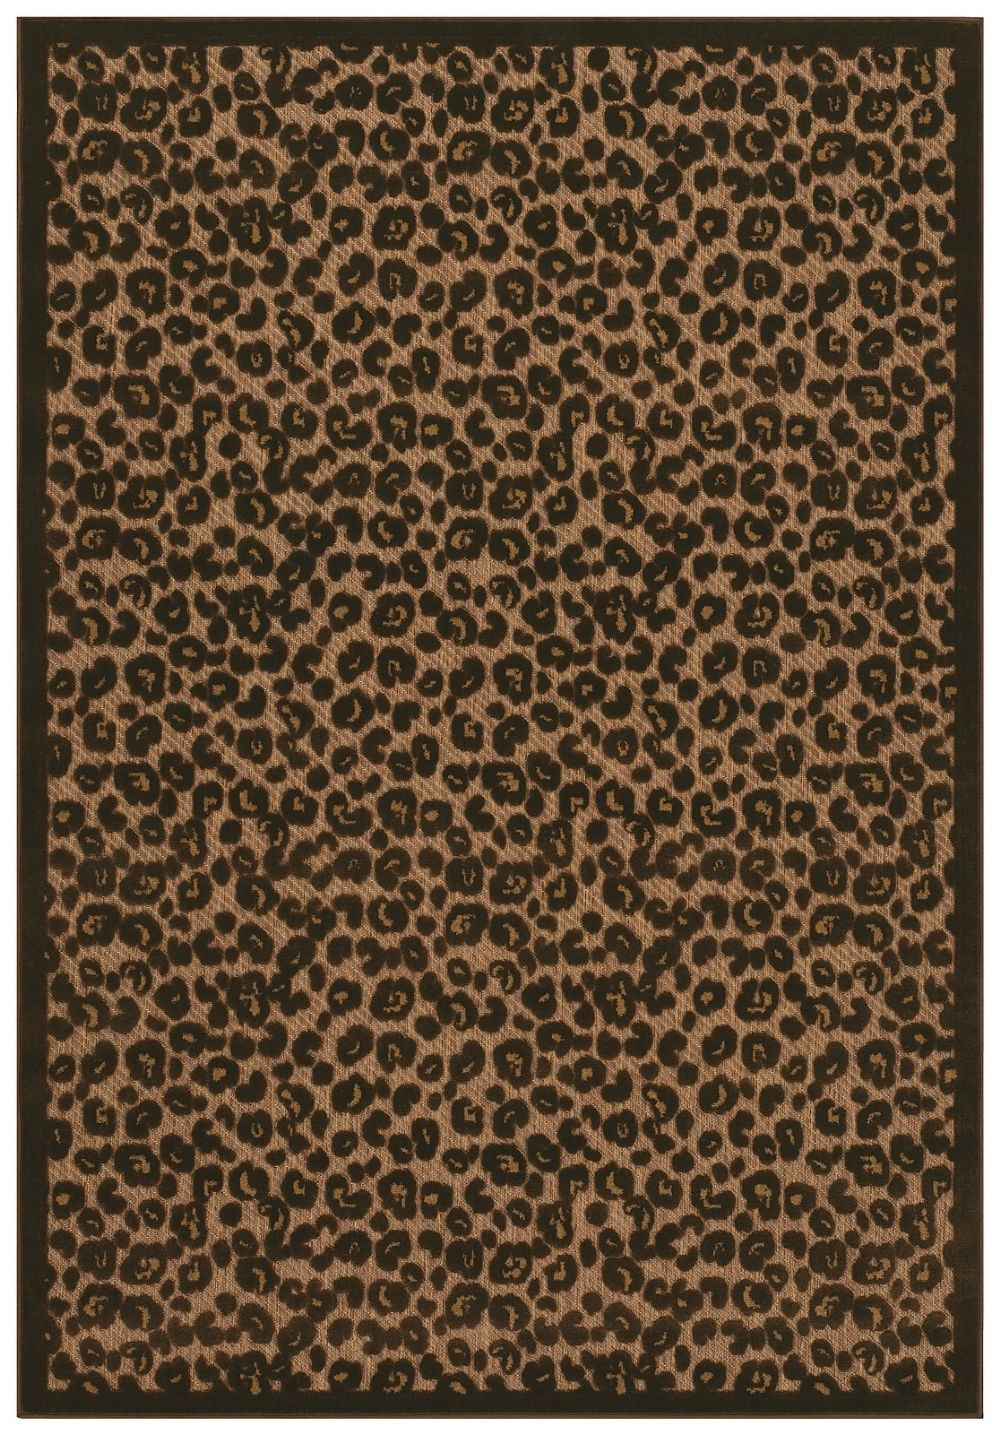 couristan urbane animal inspirations area rug collection